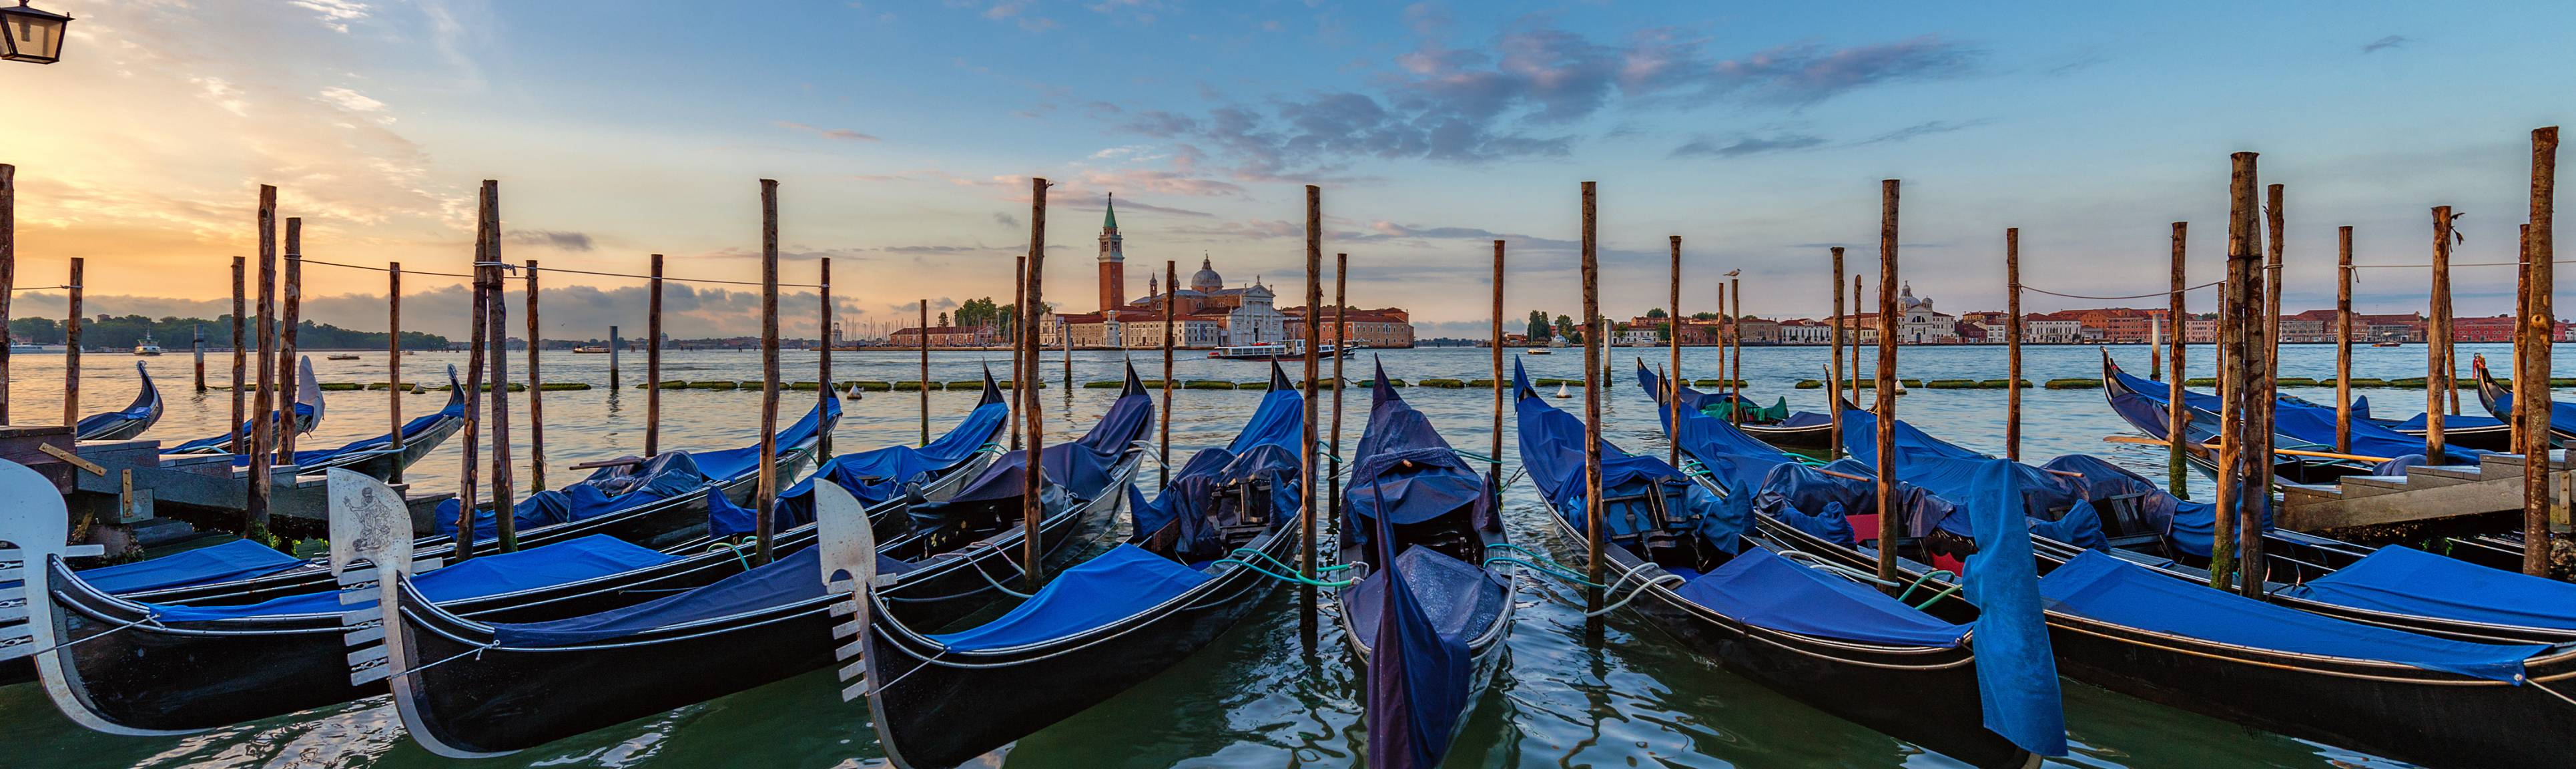 Row of covered gondolas with Venice in the background